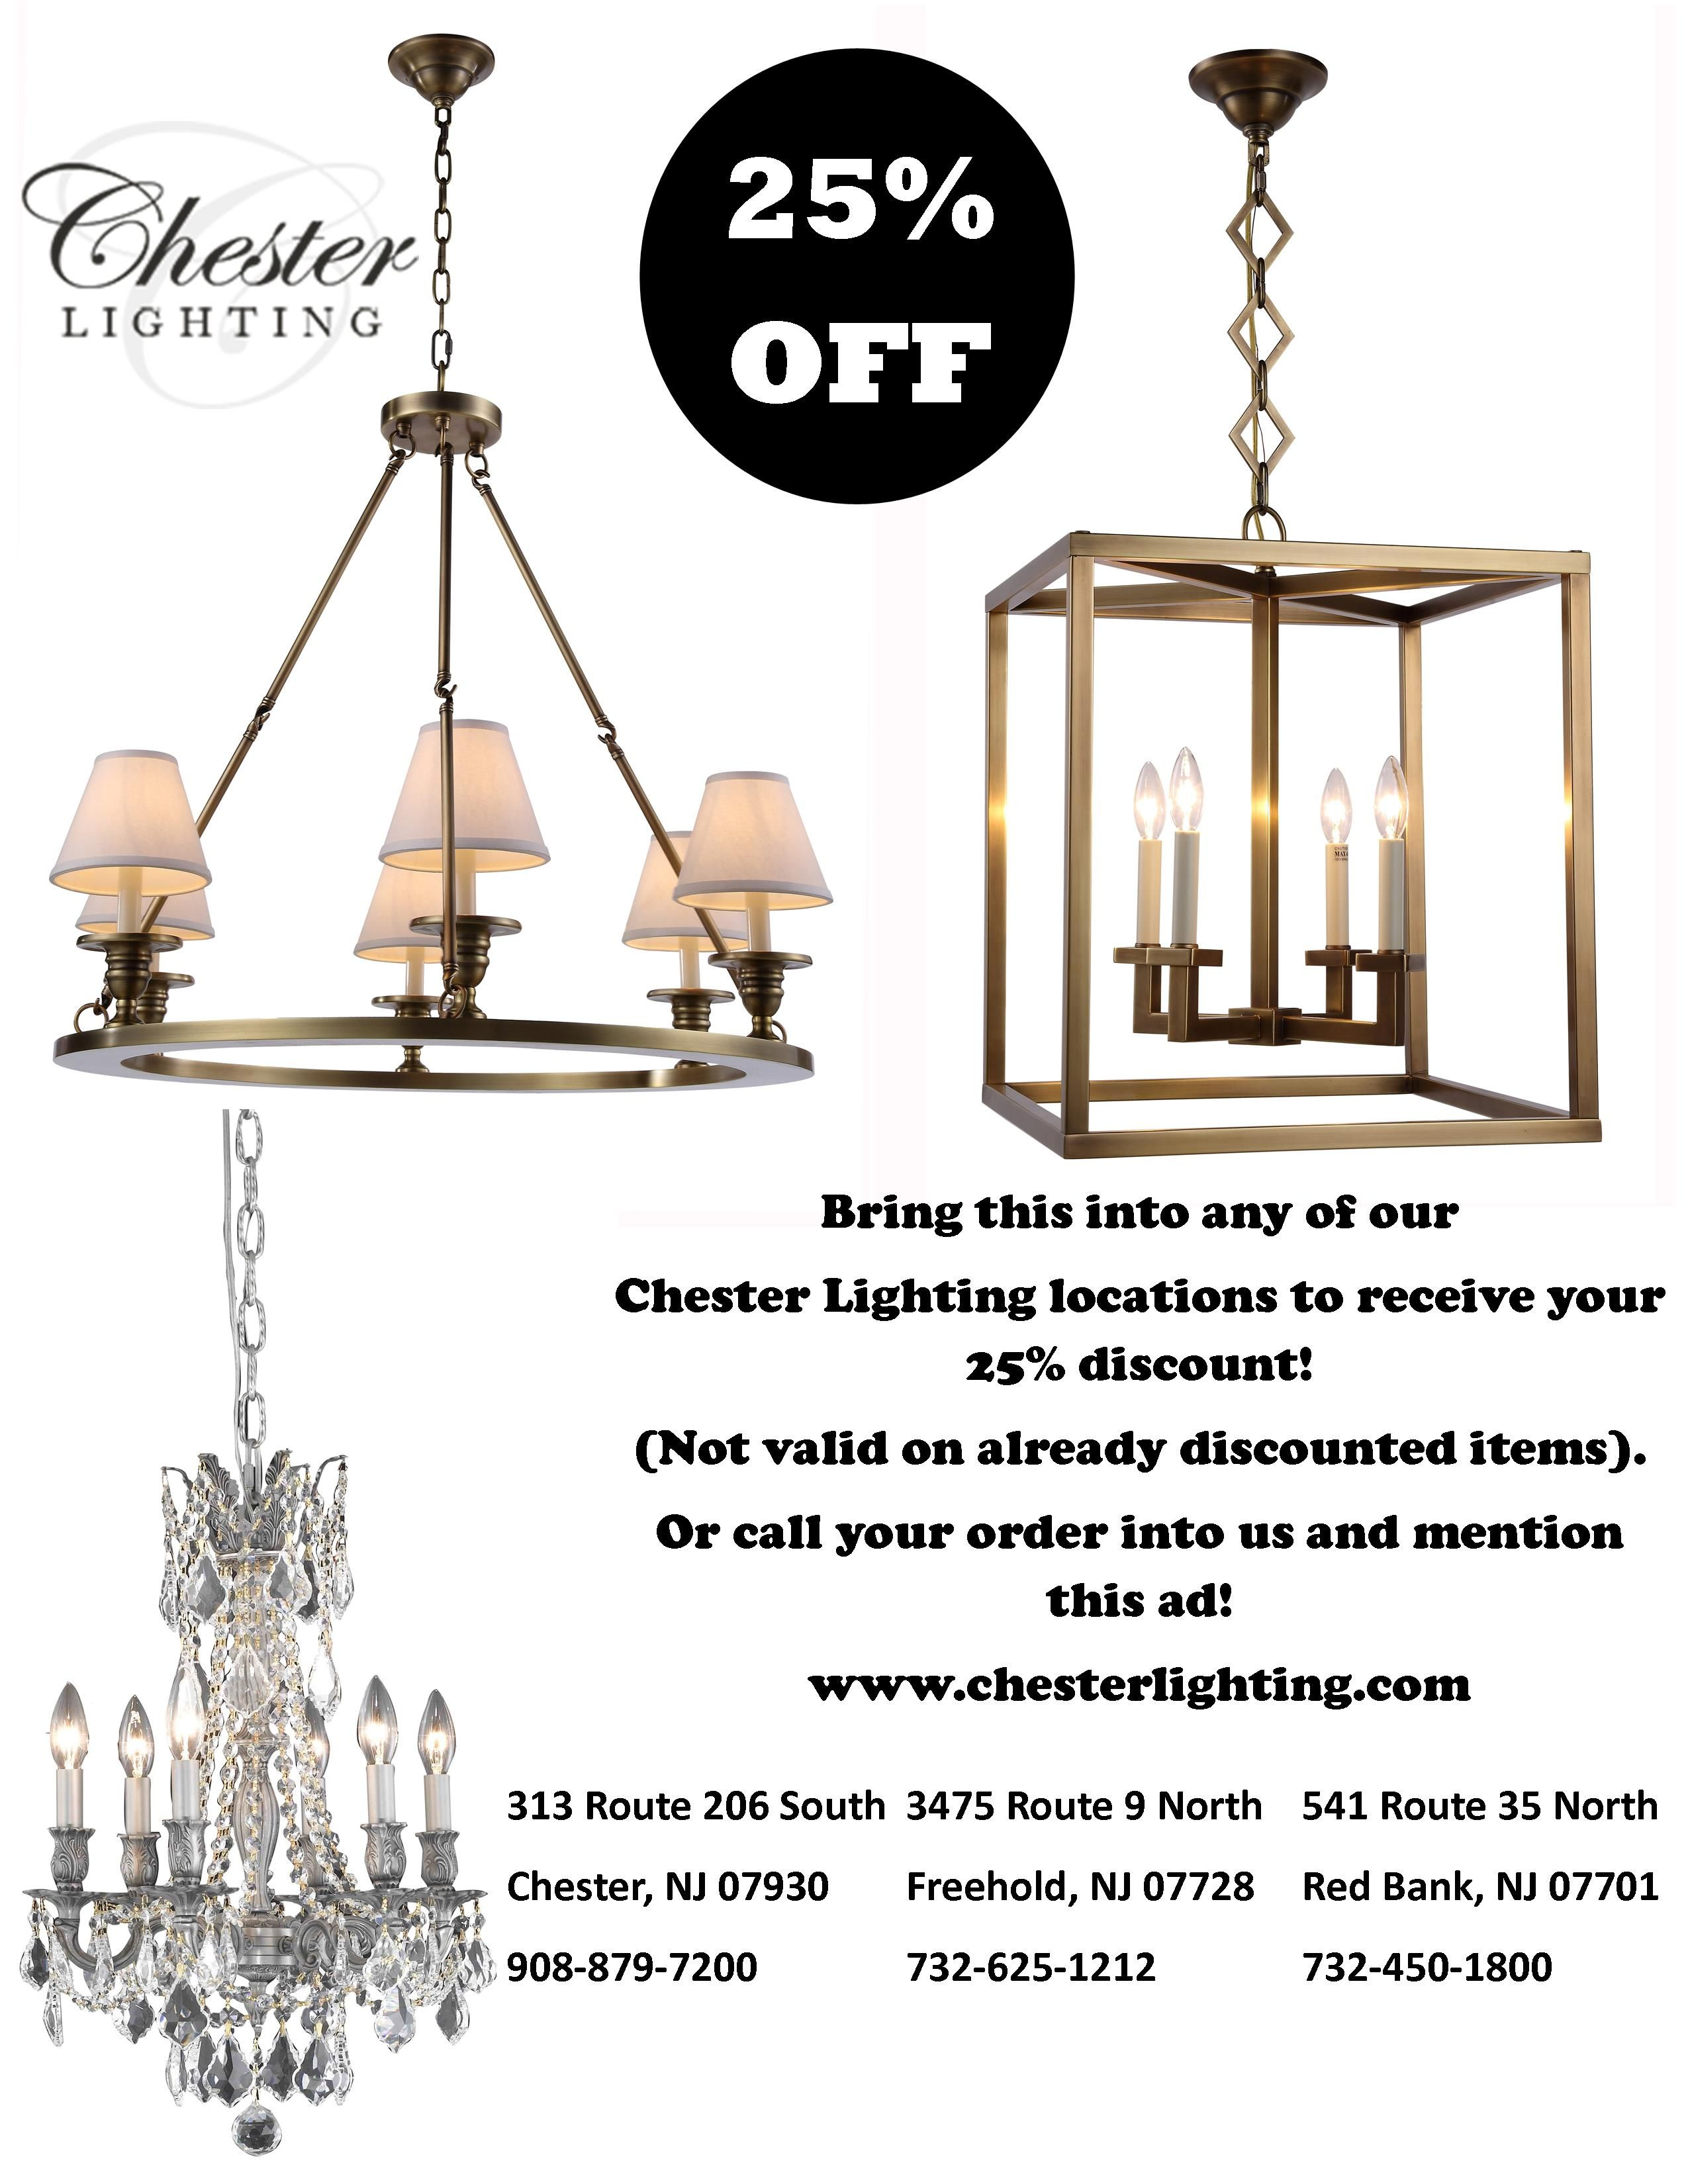 Bring this into any of our Chester Lighting locations to receive